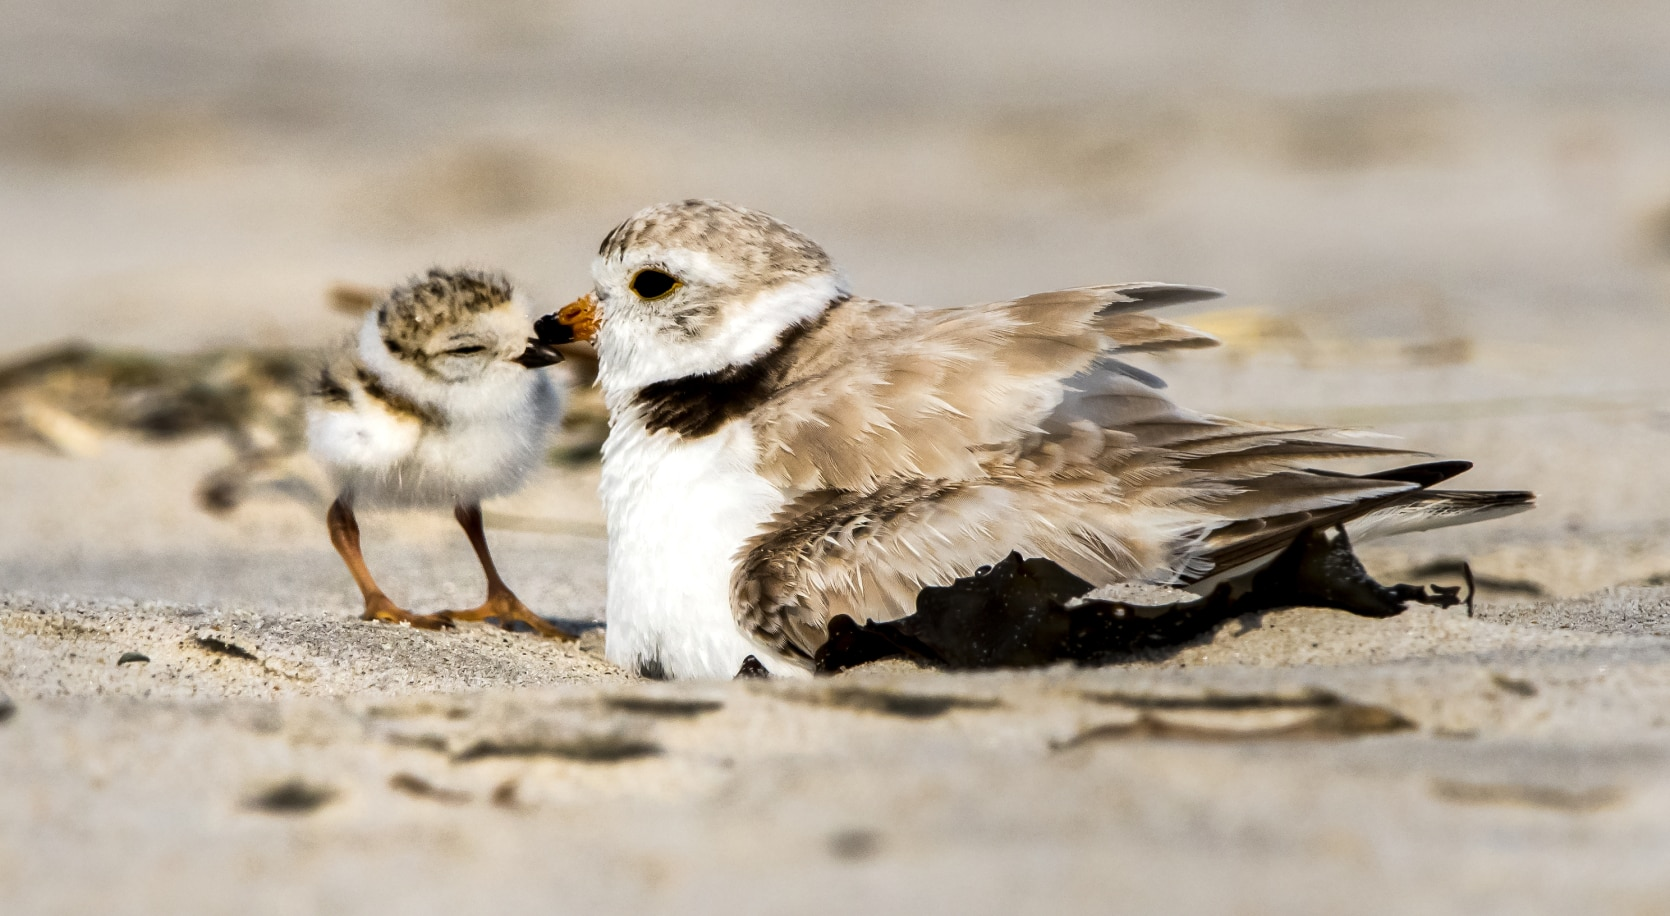 Piping plover chick with brooding adult